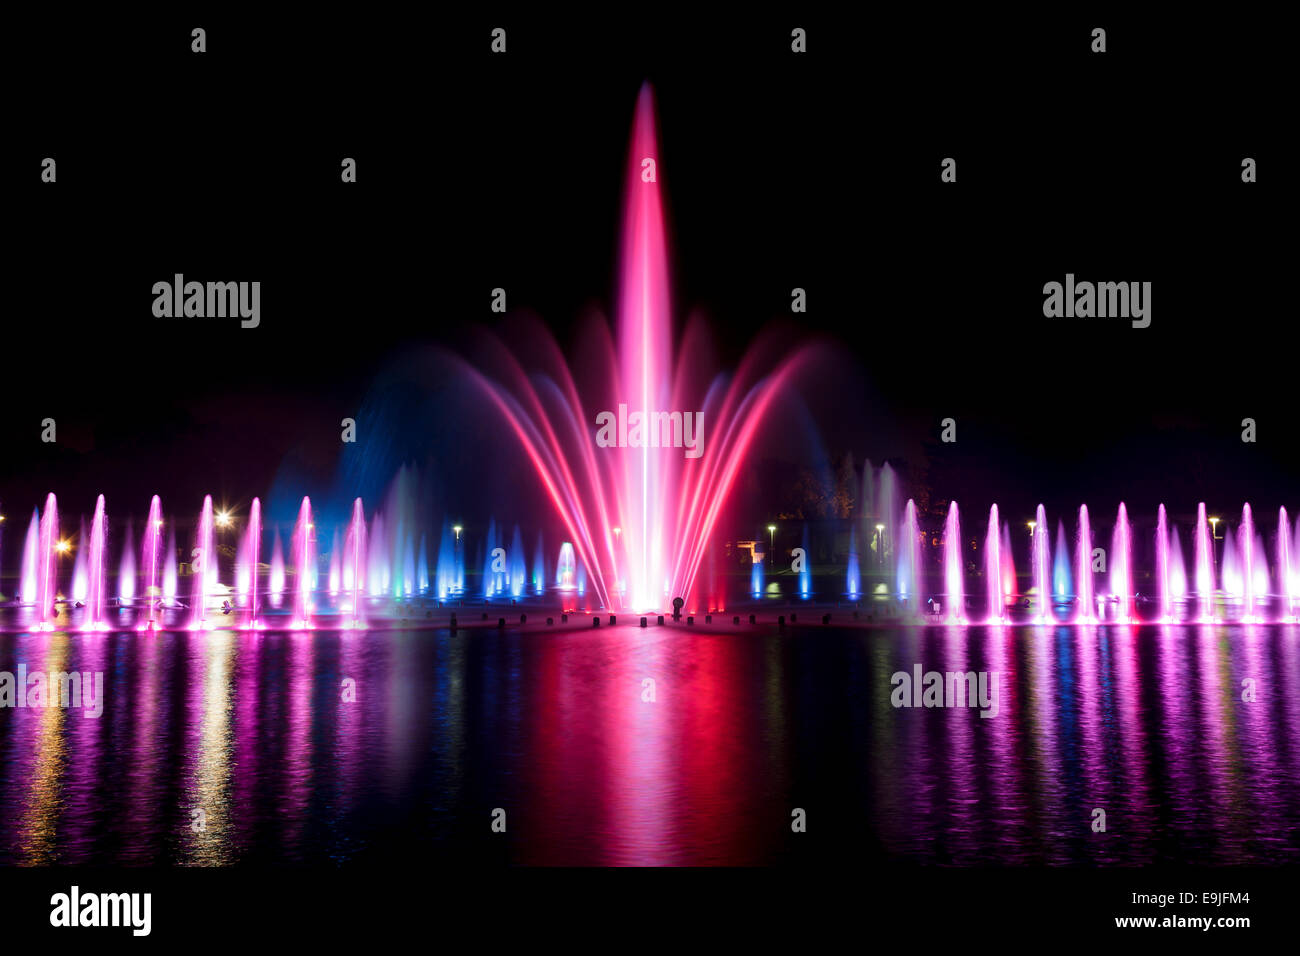 Multimedia Fountain at the Pergola, Centennial Hall, Wroclaw, Poland - Stock Image